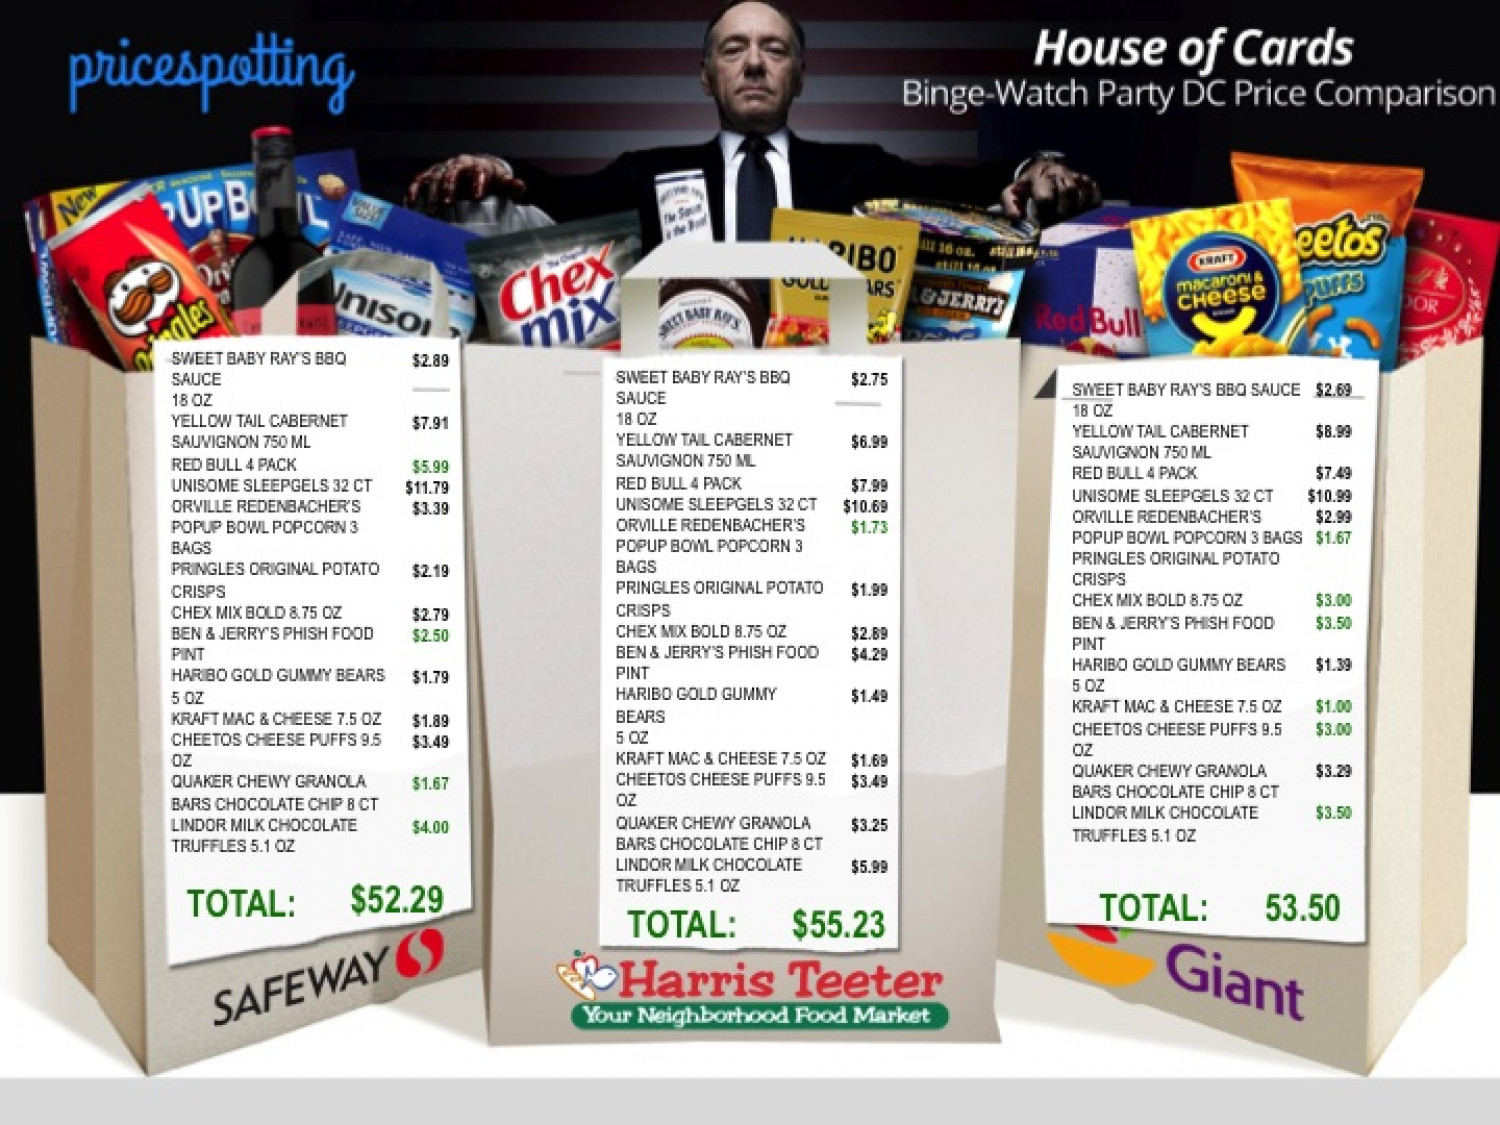 House of Cards Binge-Watch Party DC Price Comparison Infographic